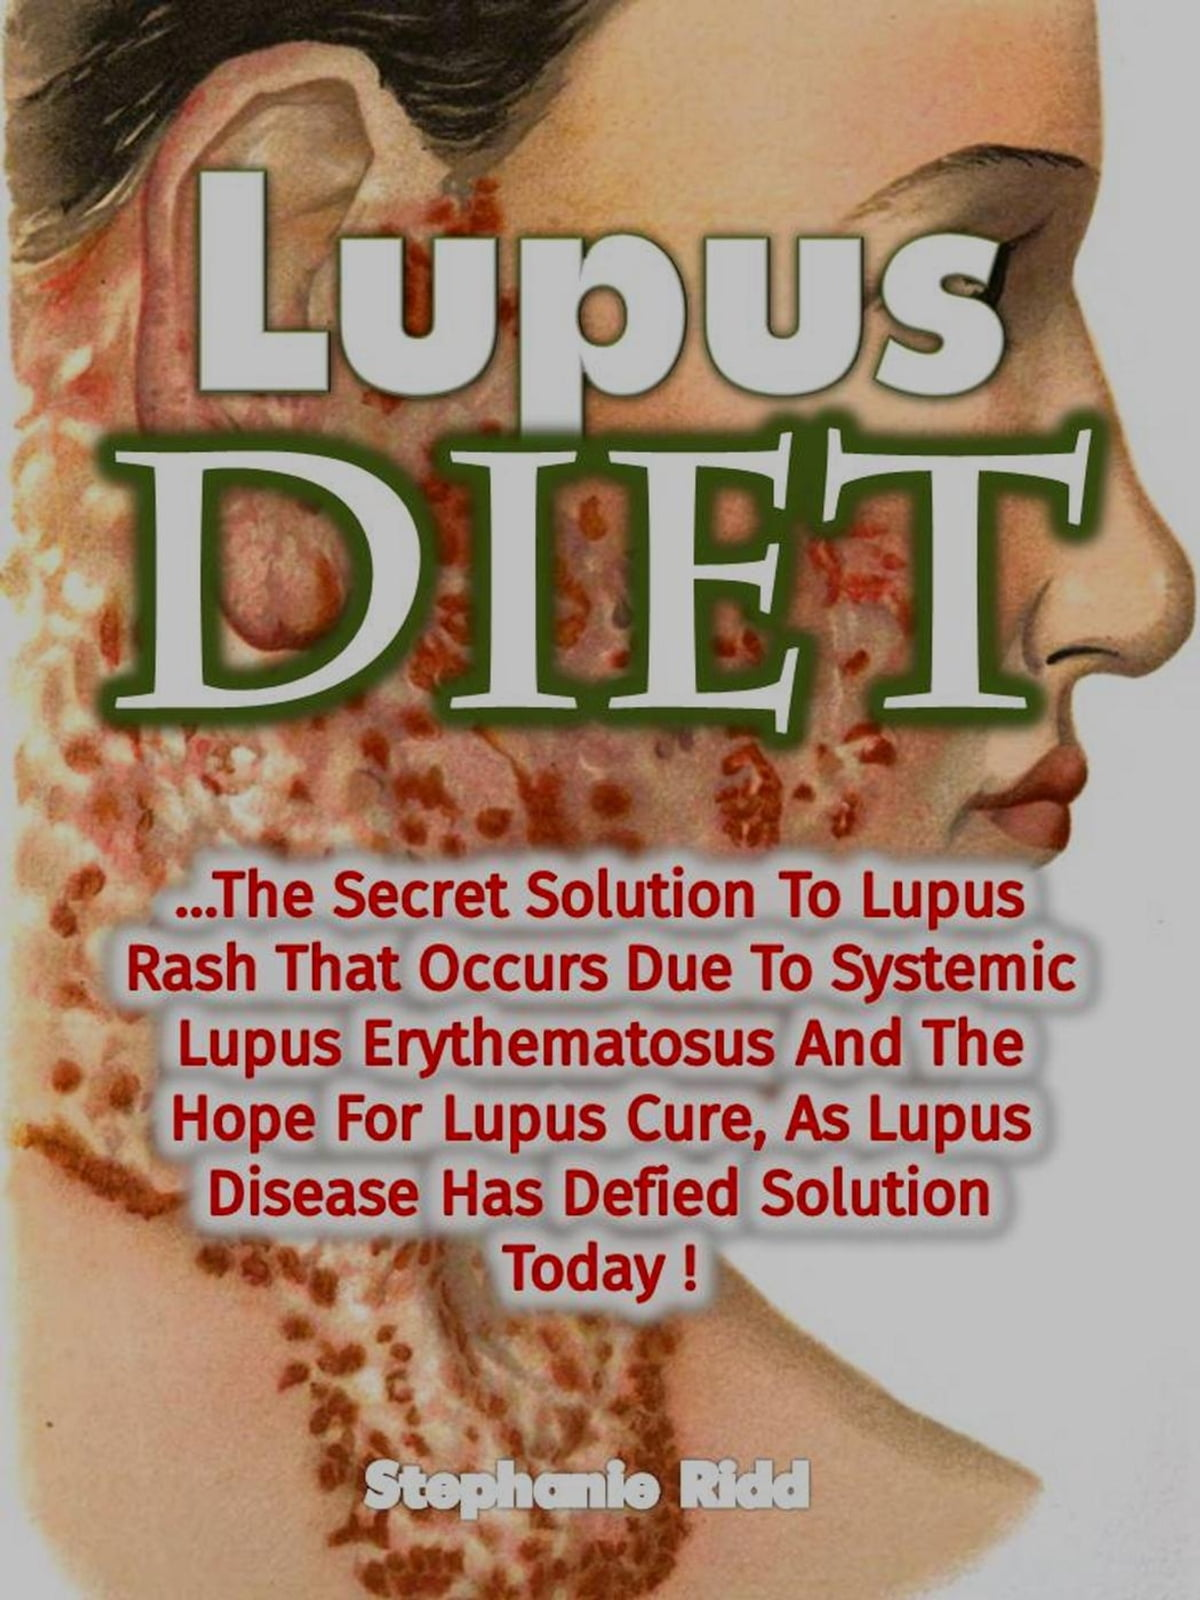 Lupus Diet: The Secret Solution To Lupus Rash That Occurs Due To Systemic  Lupus Erythematosus And The Hope For Lupus Cure, As Lupus Disease Has  Defied